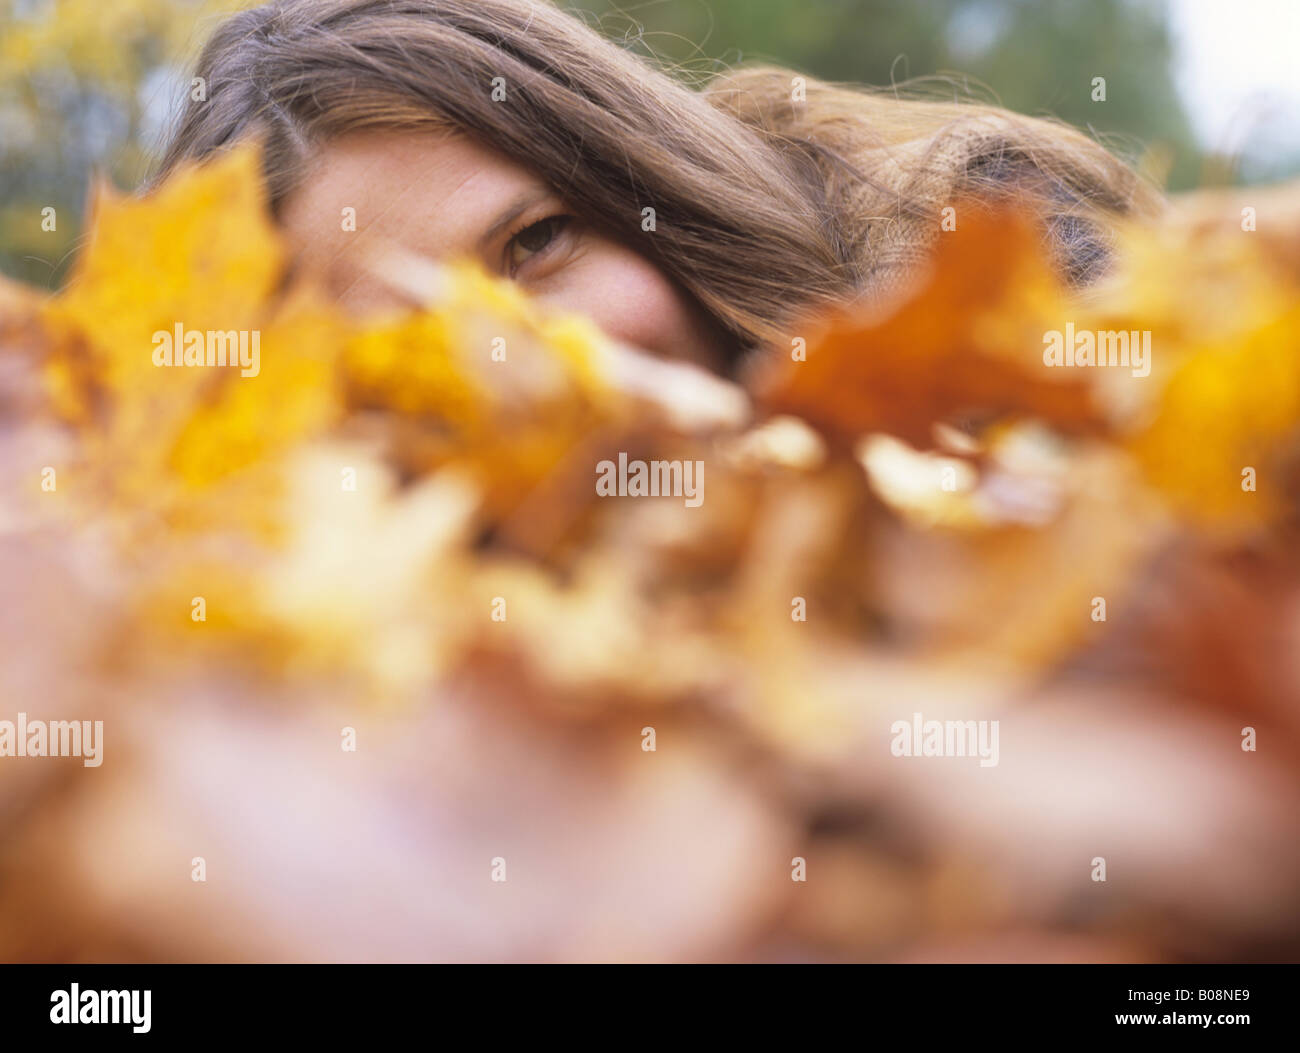 Woman amid autumn leaves - Stock Image